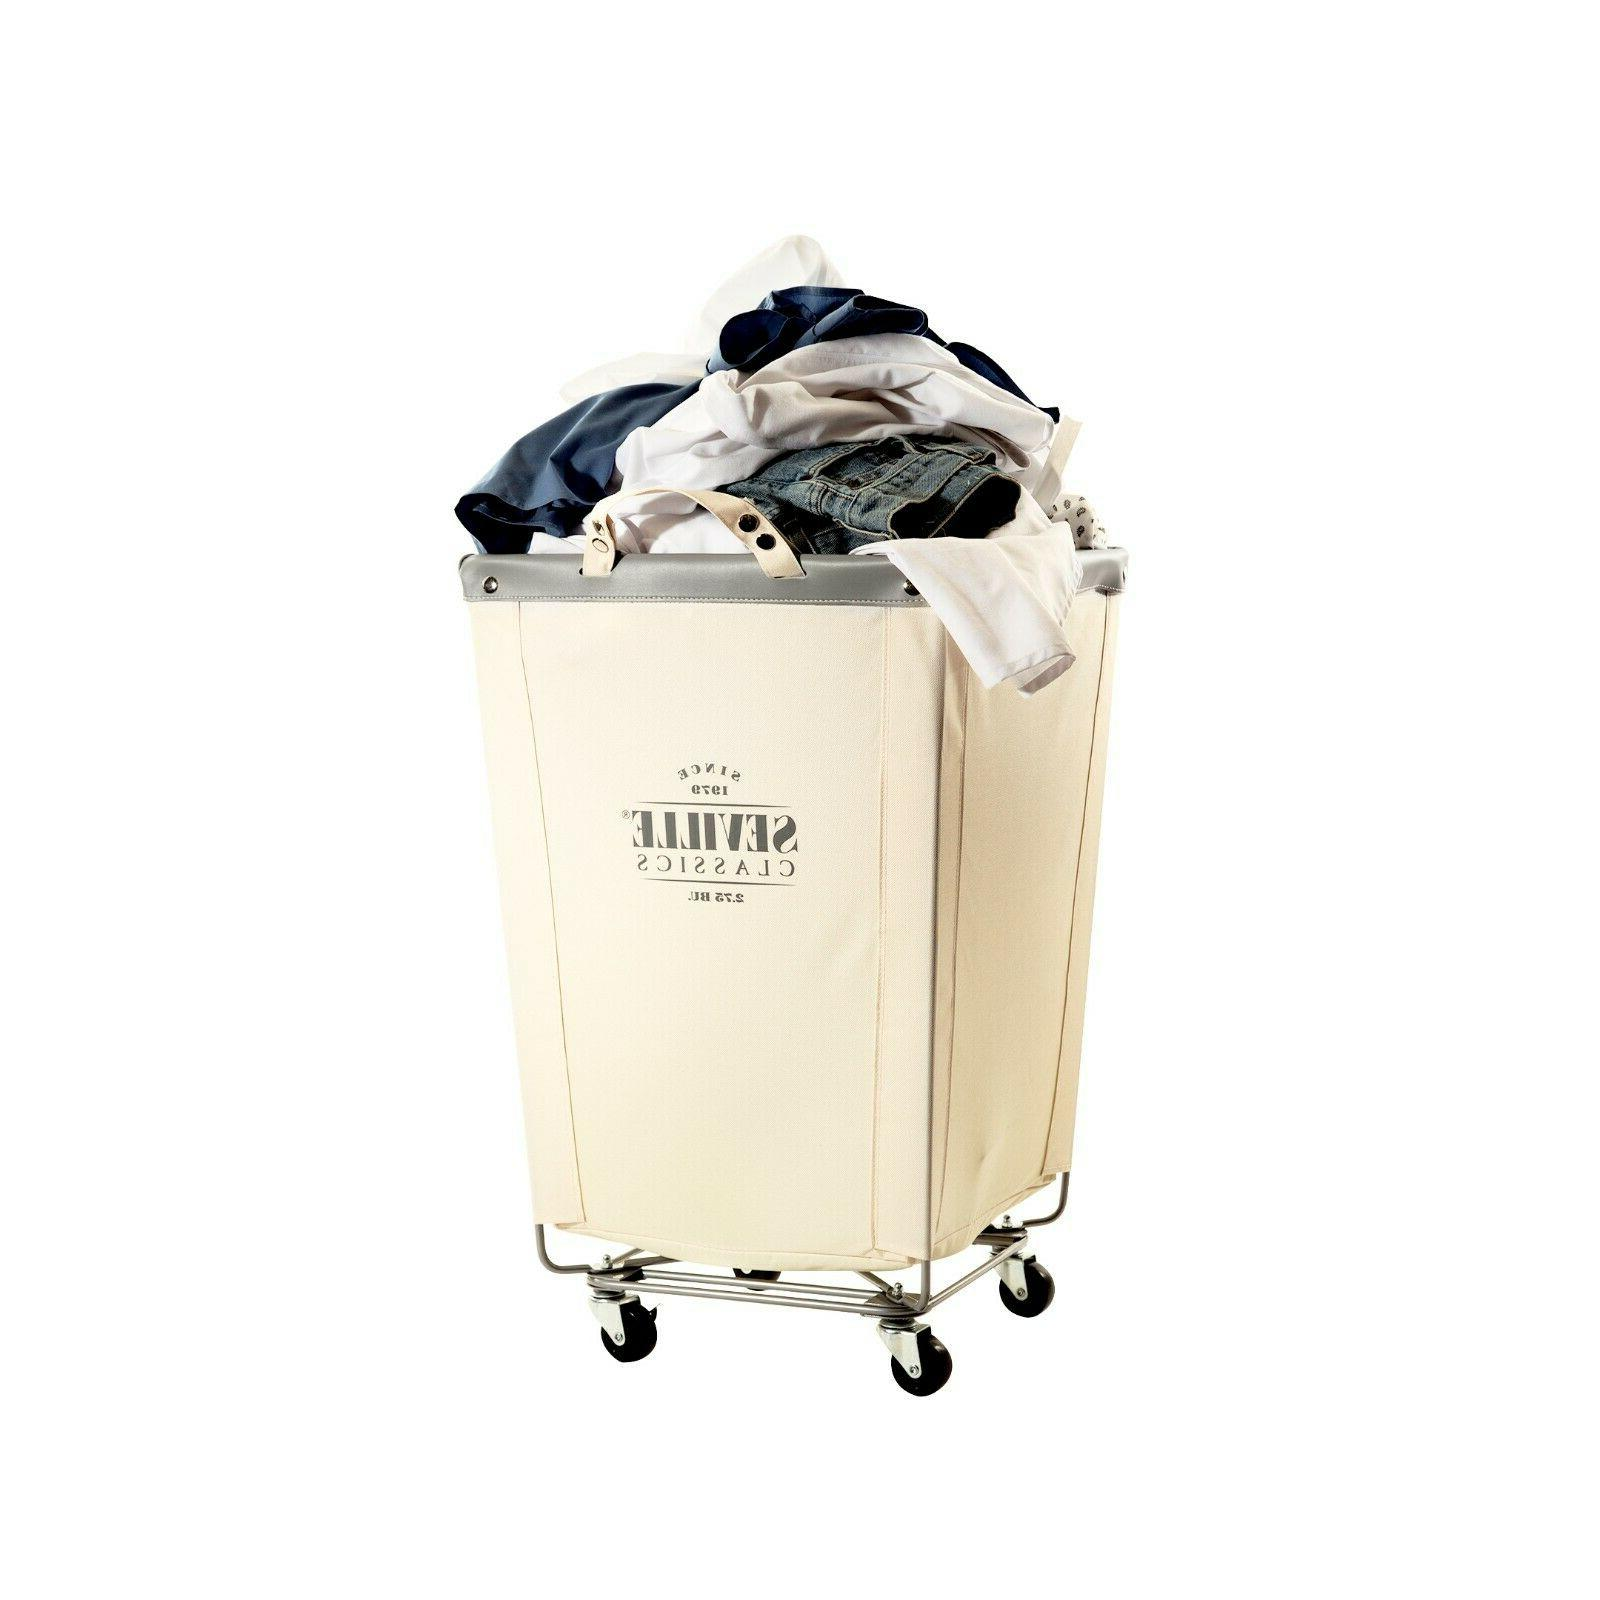 COMMERCIAL HEAVY-DUTY LAUNDRY REMOVABLE HAMPER WHEELS,